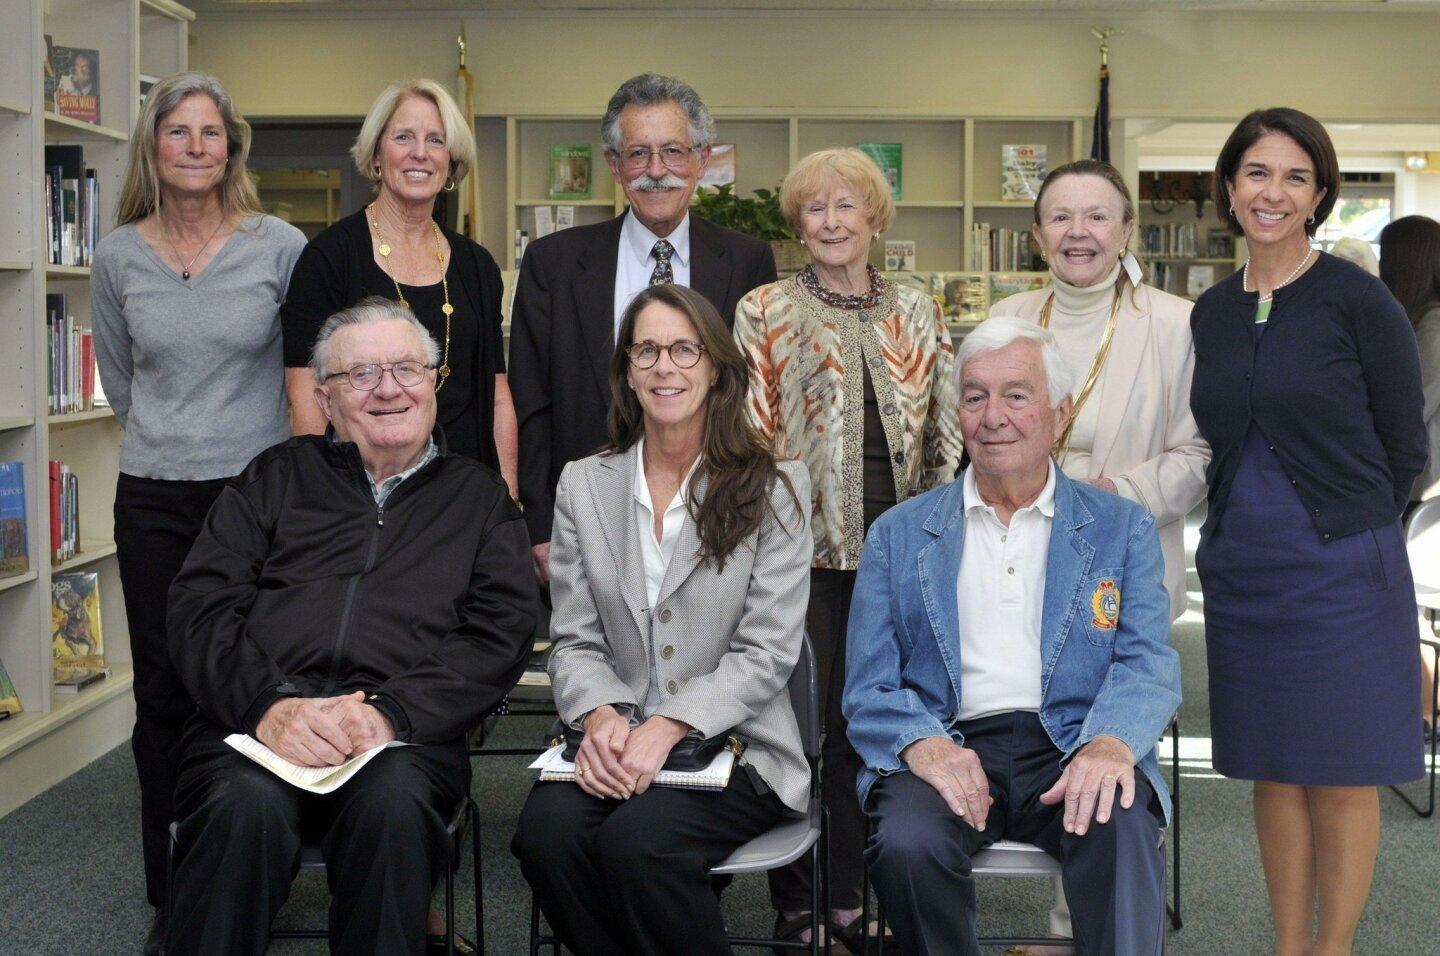 Rancho Santa Fe Library Guild Board of Directors- Seated: Claude Kordus, Treasurer Deana Ingalls, Tony Wilson. Standing: Erika Desjardins, Secretary Kathy Stumm, President Art Yayanos, past President Nancy Miller, Susan Bailey Cowan, Executive Director Susan Appleby